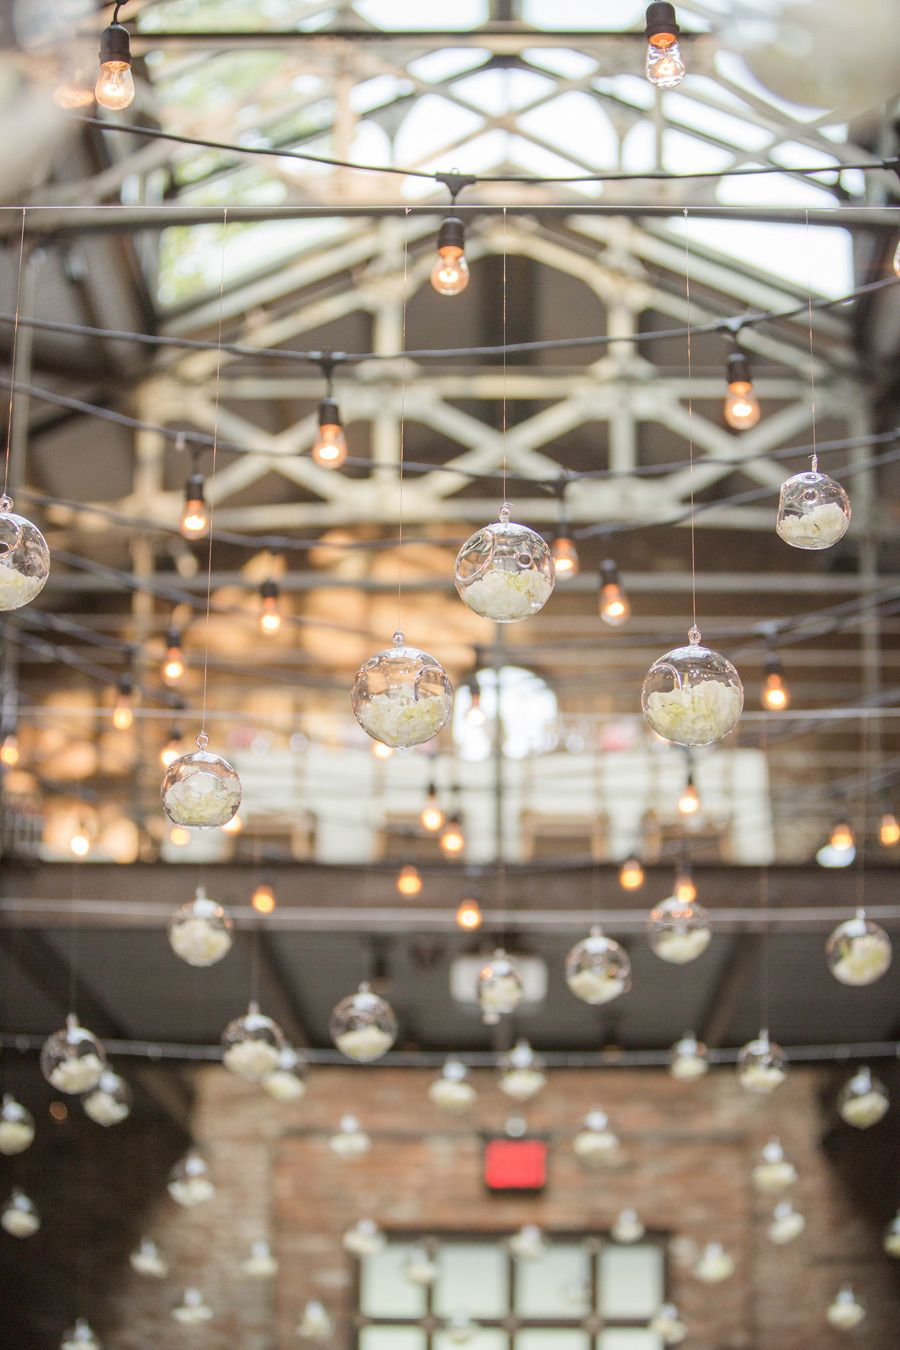 Festive Lights Are Perfect For Any Wedding Celebration.